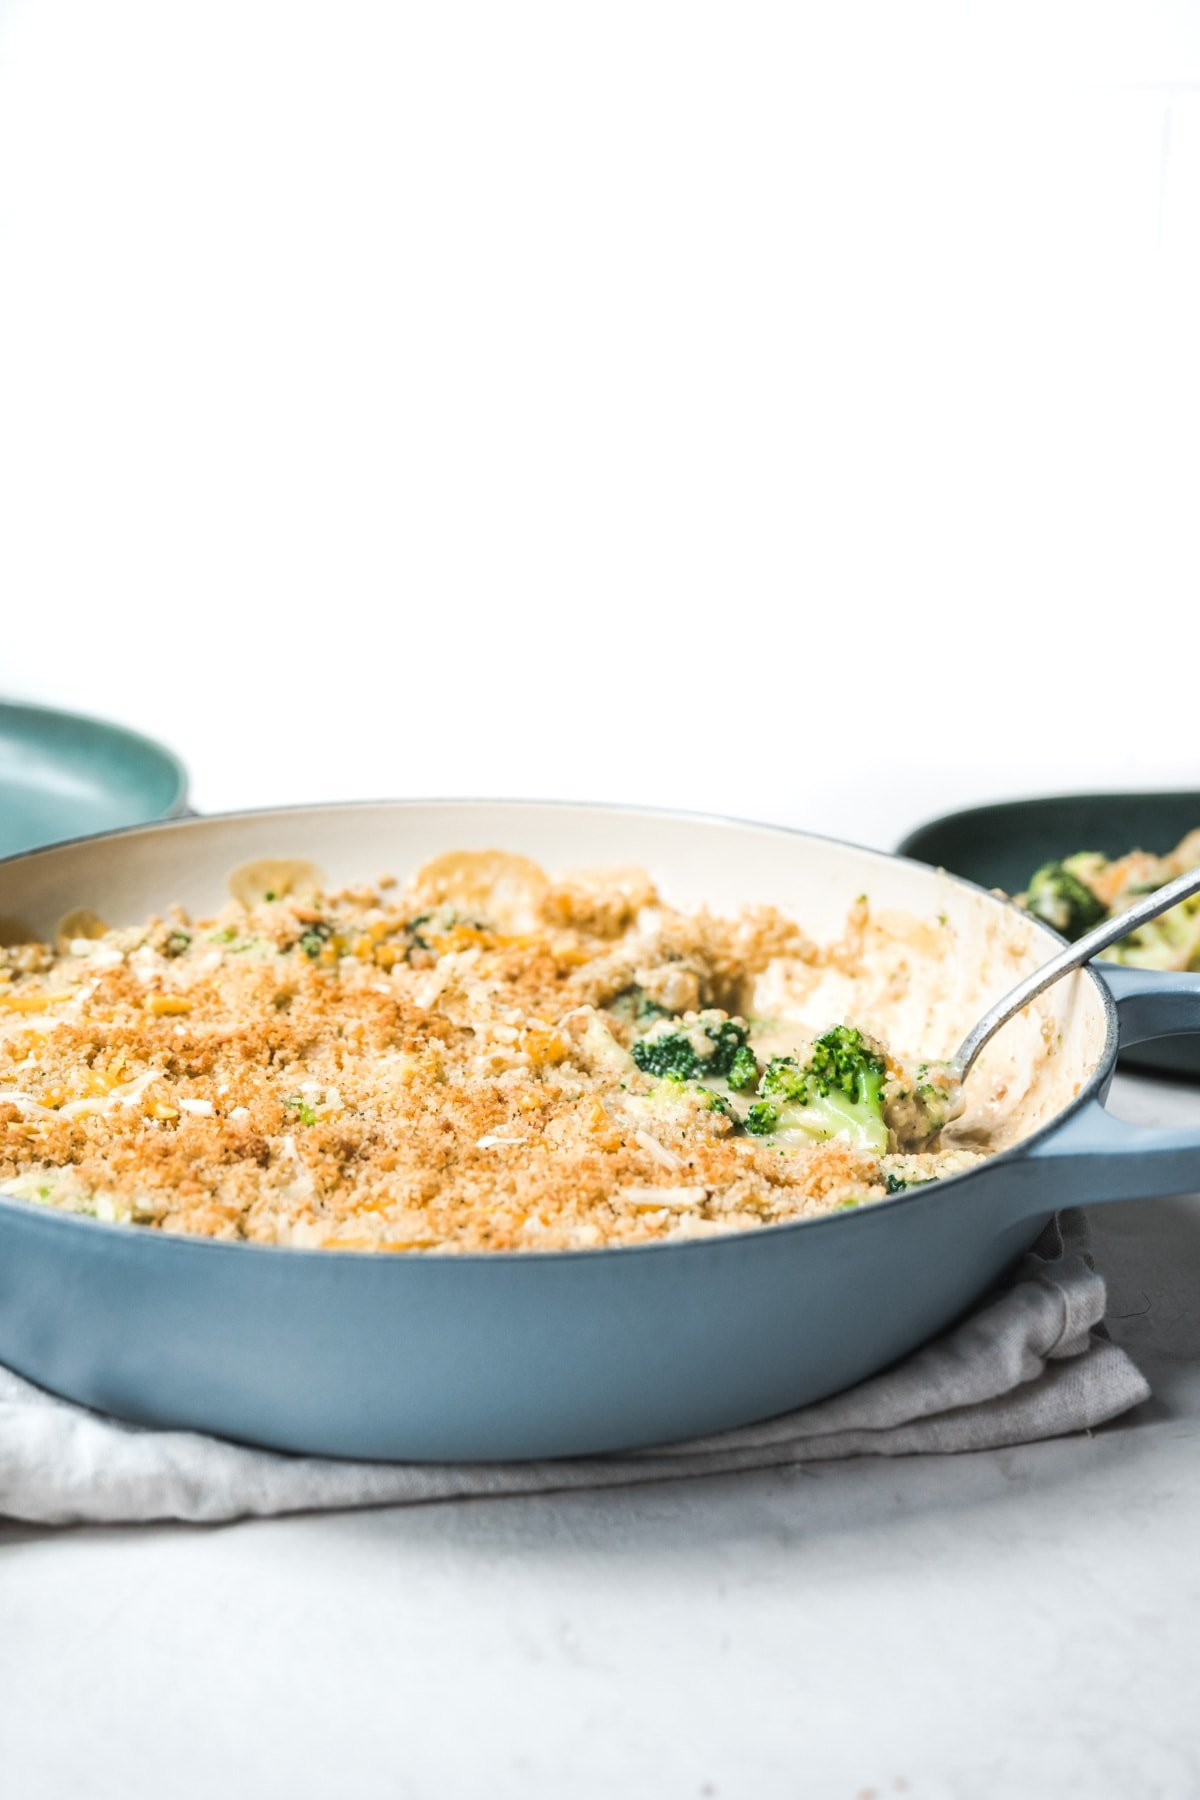 side view of large skillet with vegan broccoli casserole and serving spoon.